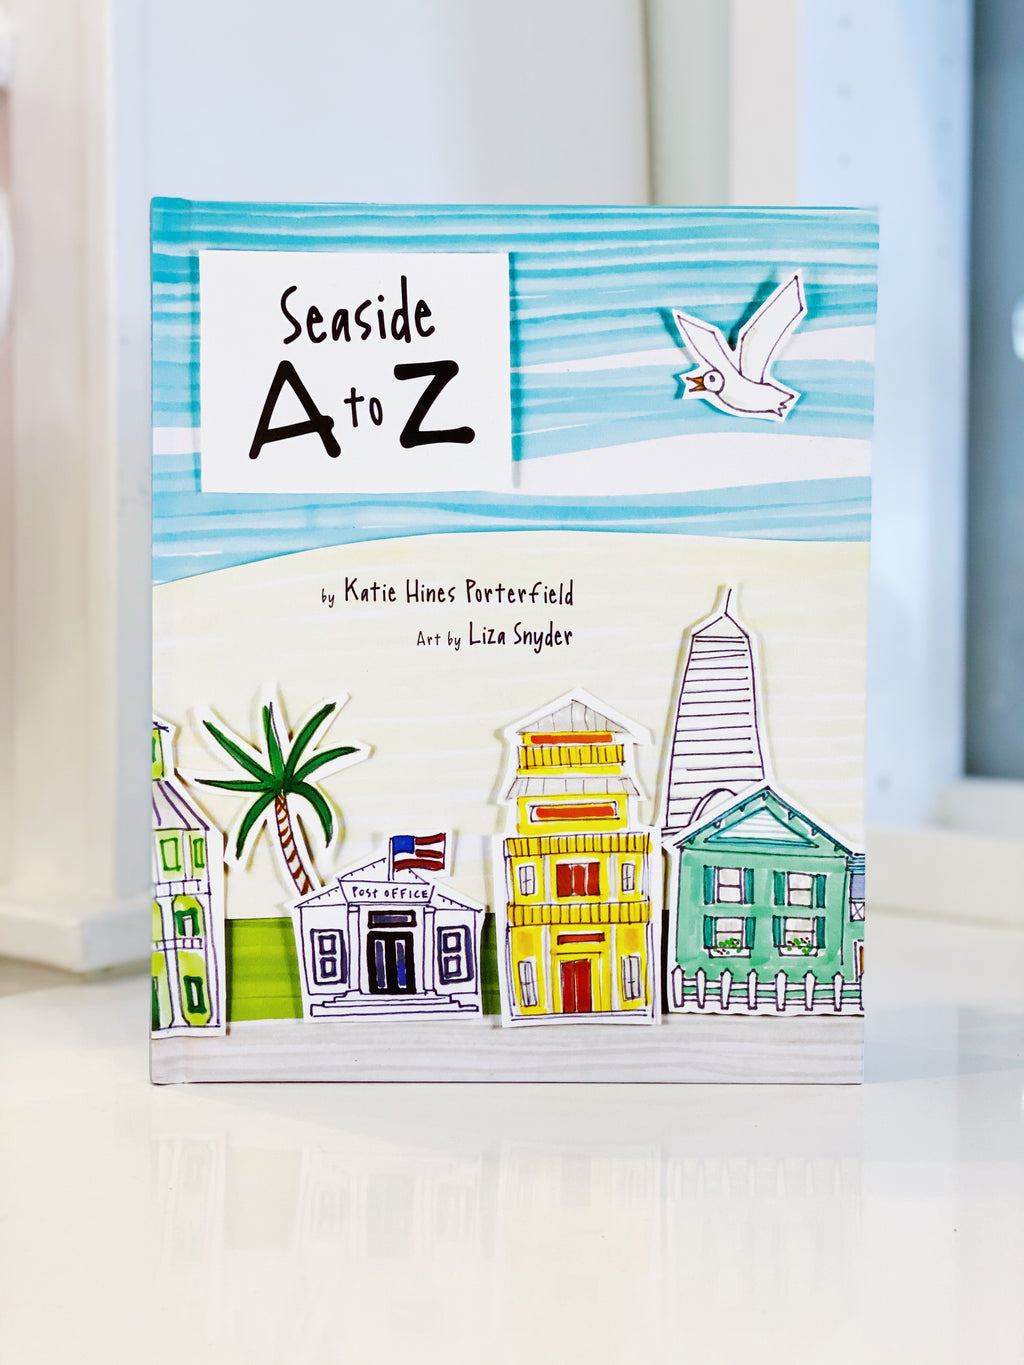 Seaside A to Z Book